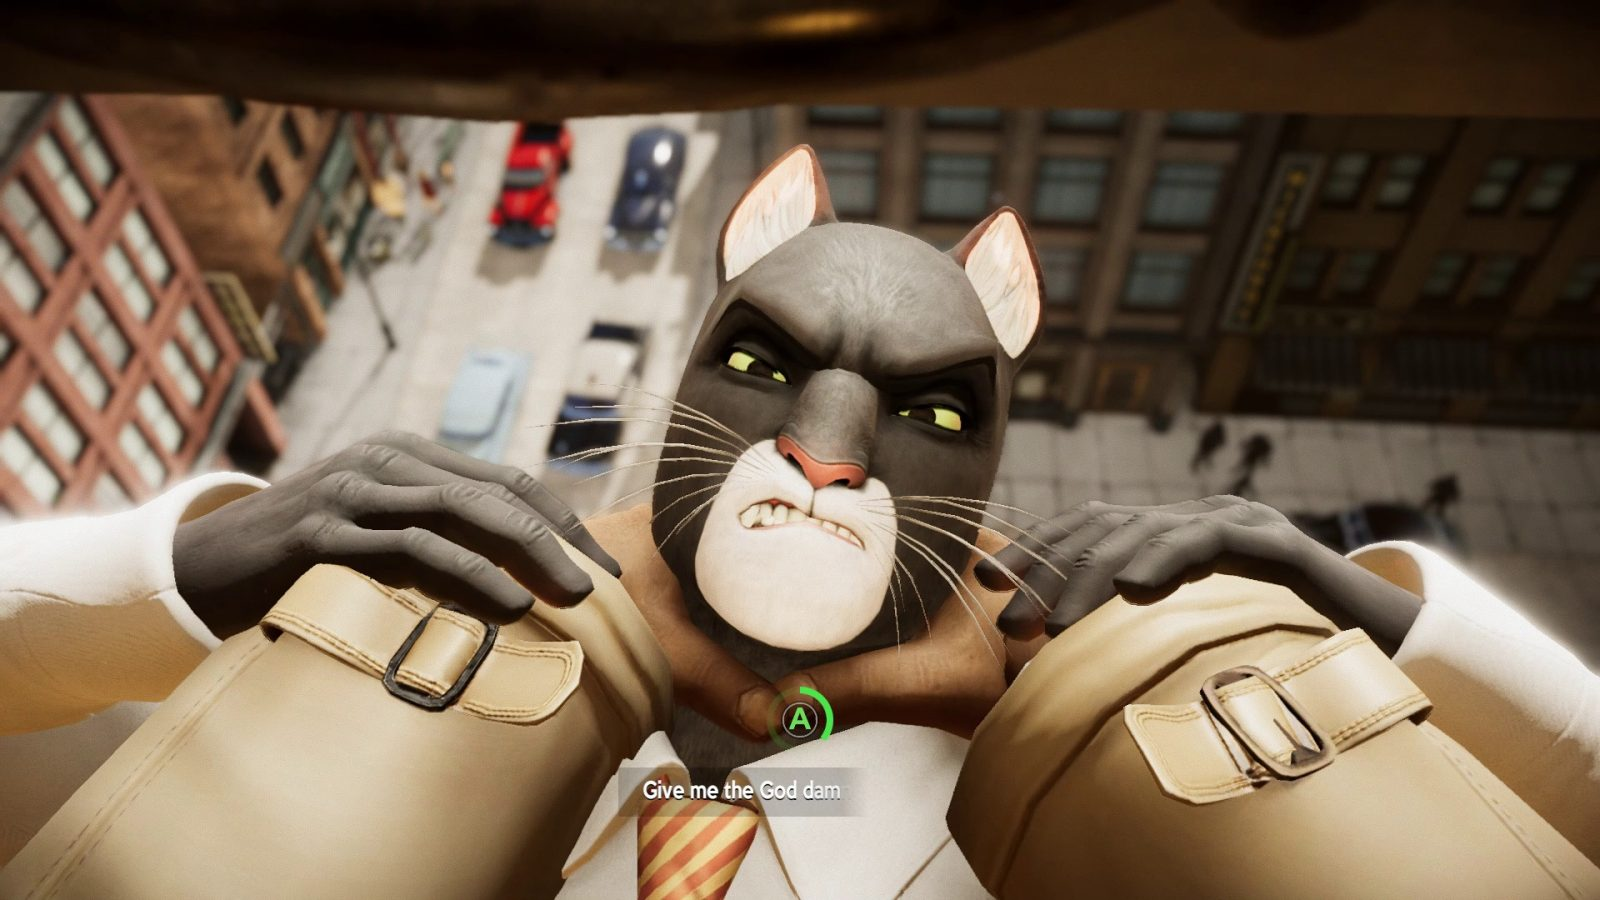 """Blacksad: Under the Skin Released Early in Europe on PS4, XB1 Due to """"Technical Malfunction"""""""